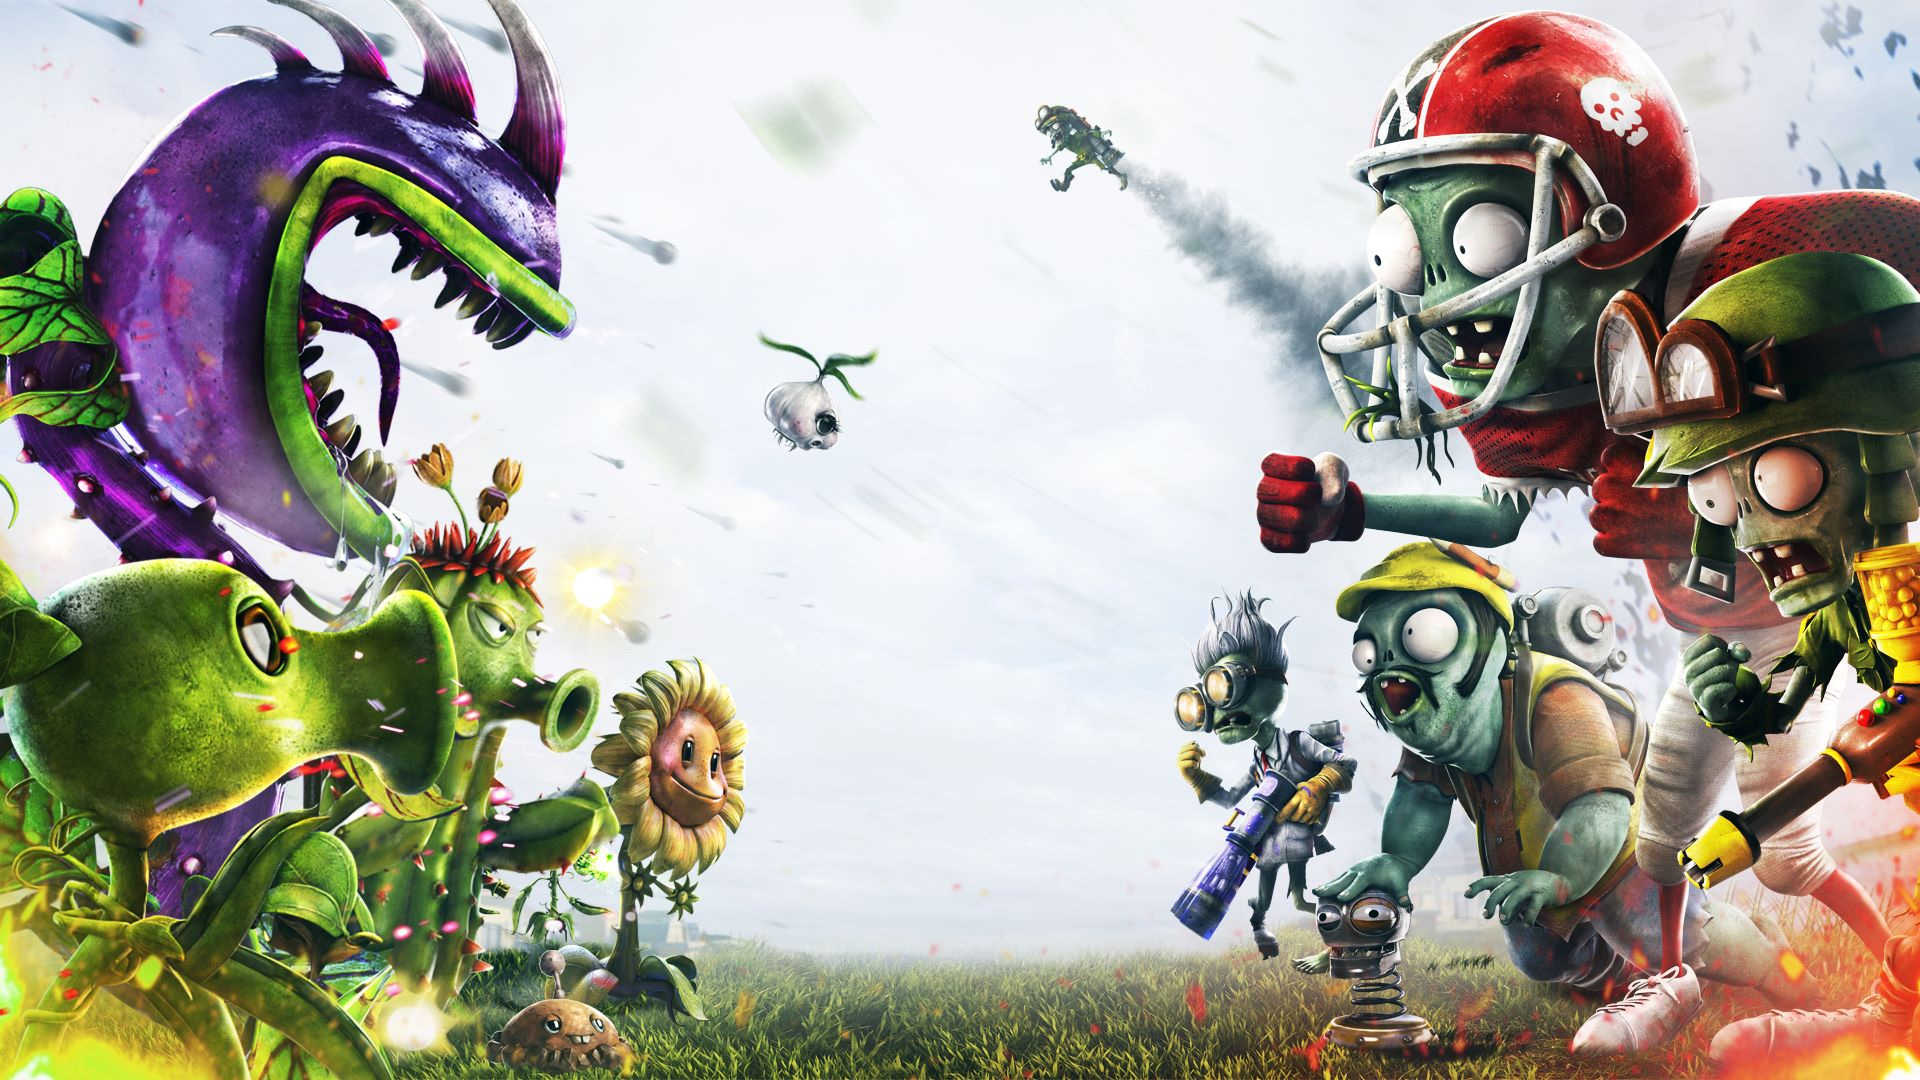 Plants Vs Zombies Garden Warfare 2 Is Getting The First Games